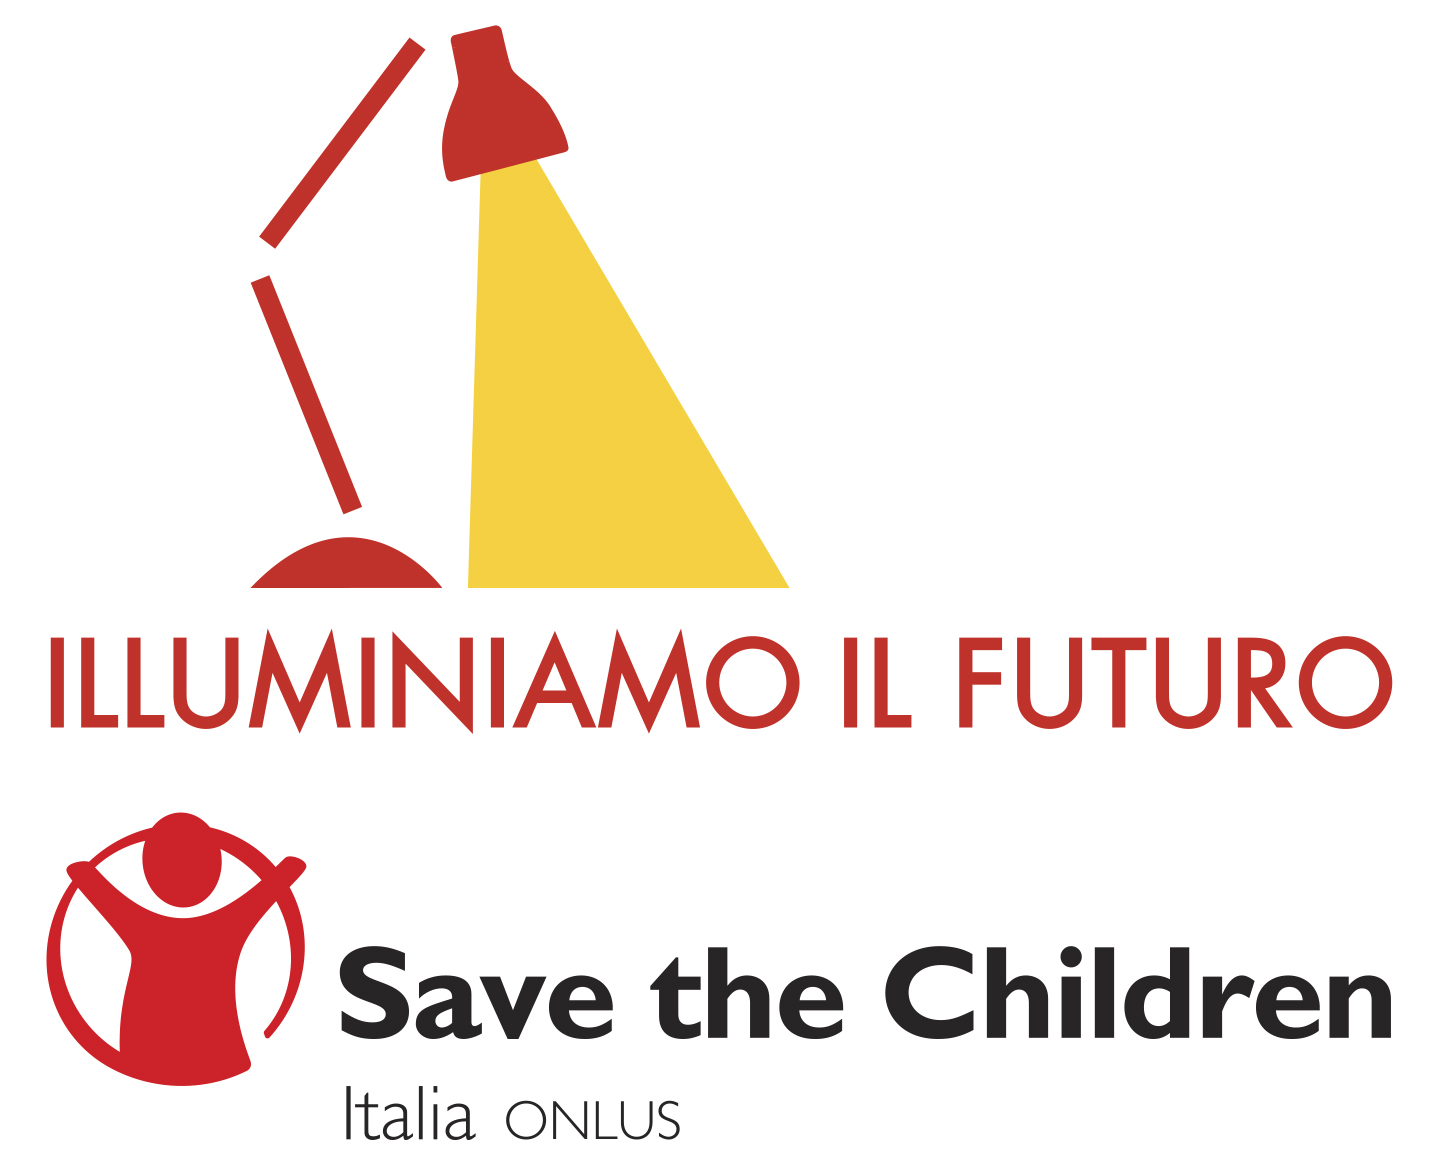 OPL aderisce a ILLUMINIAMO IL FUTURO, la campagna nazionale di SAVE THE CHILDREN contro la povertà educativa